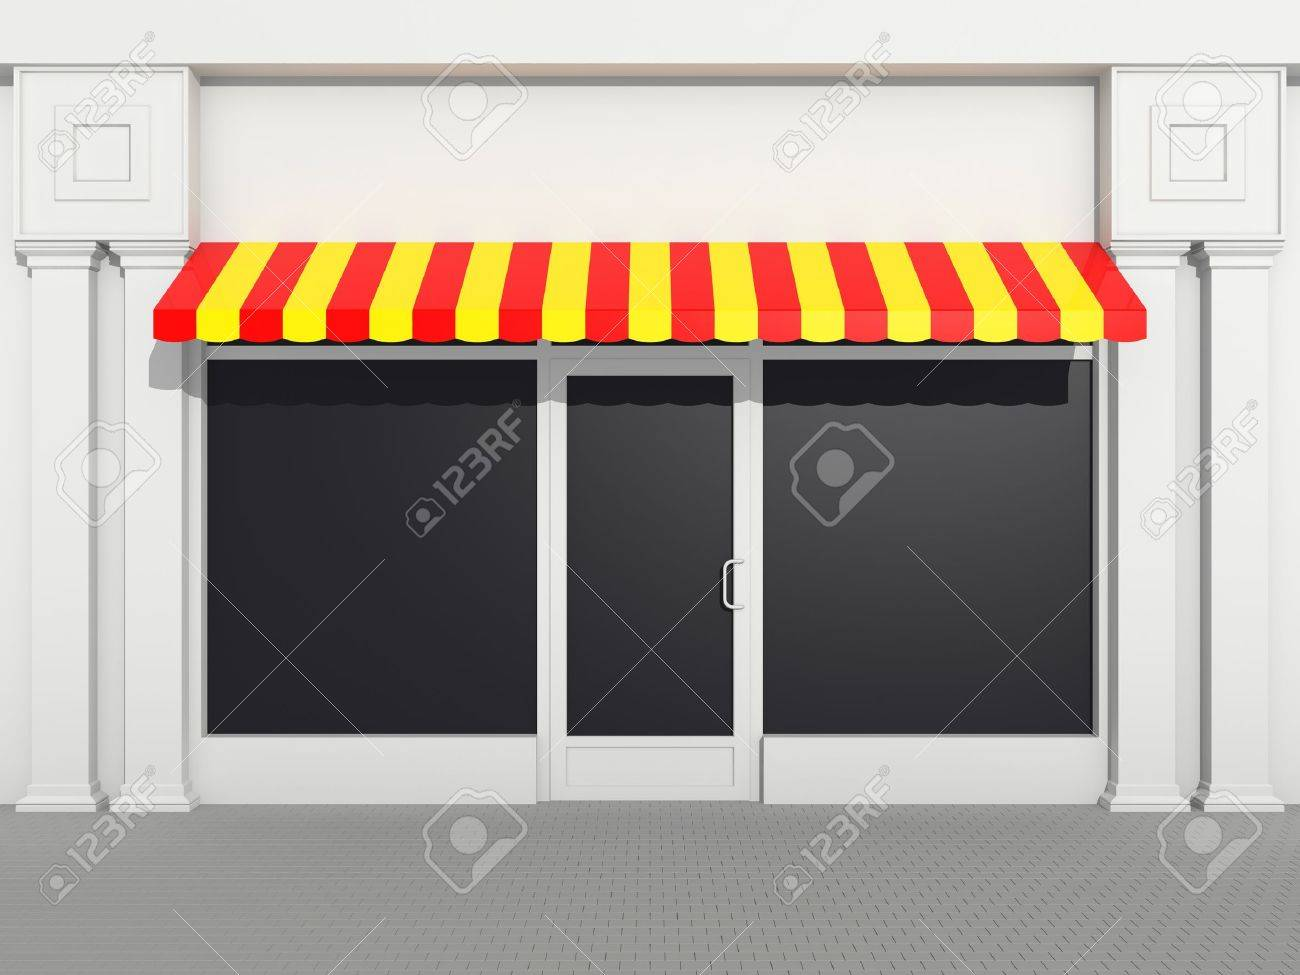 Shopfront - classic store front with colored awnings Stock Photo - 13358234